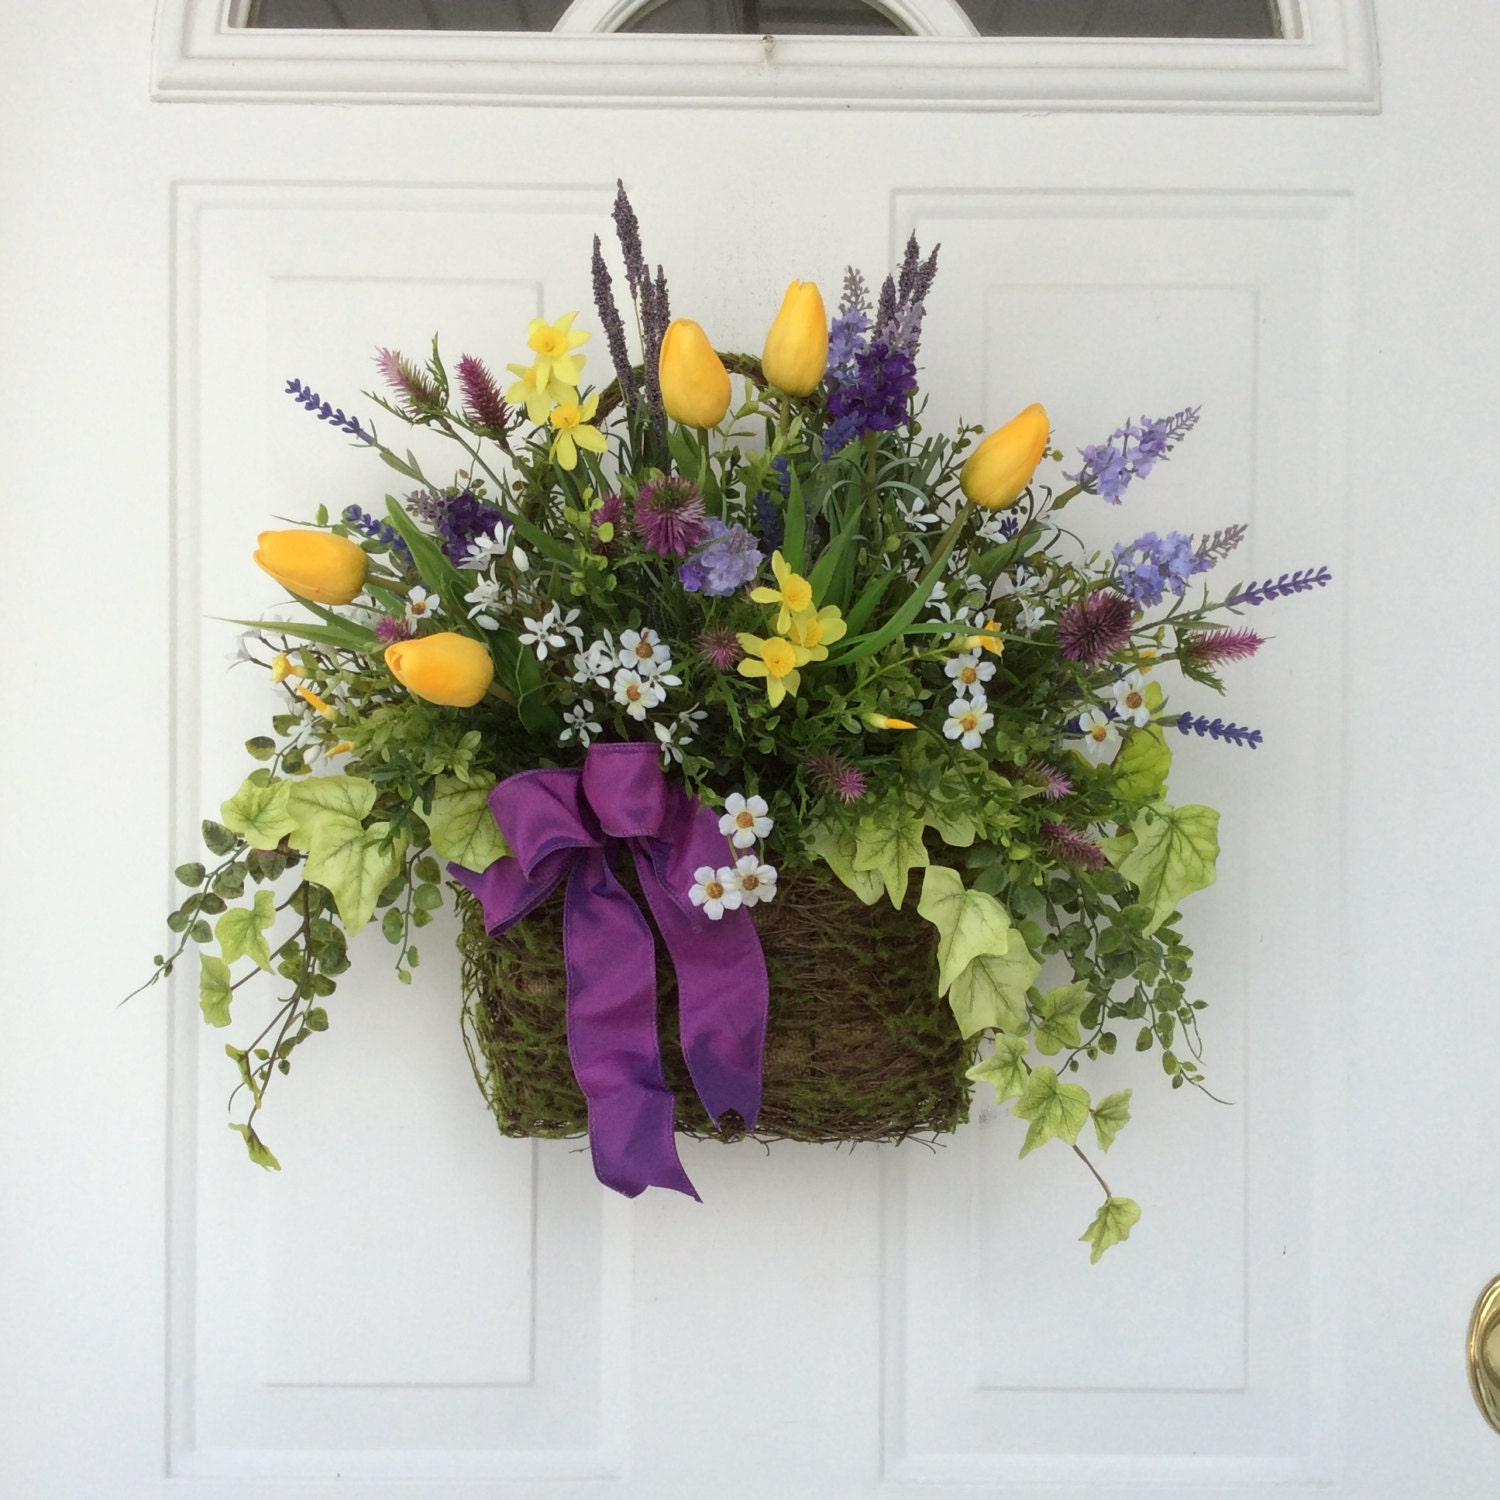 Front Door Baskets: Spring Wreath-Spring Door Basket-Easster Wreath-Summer